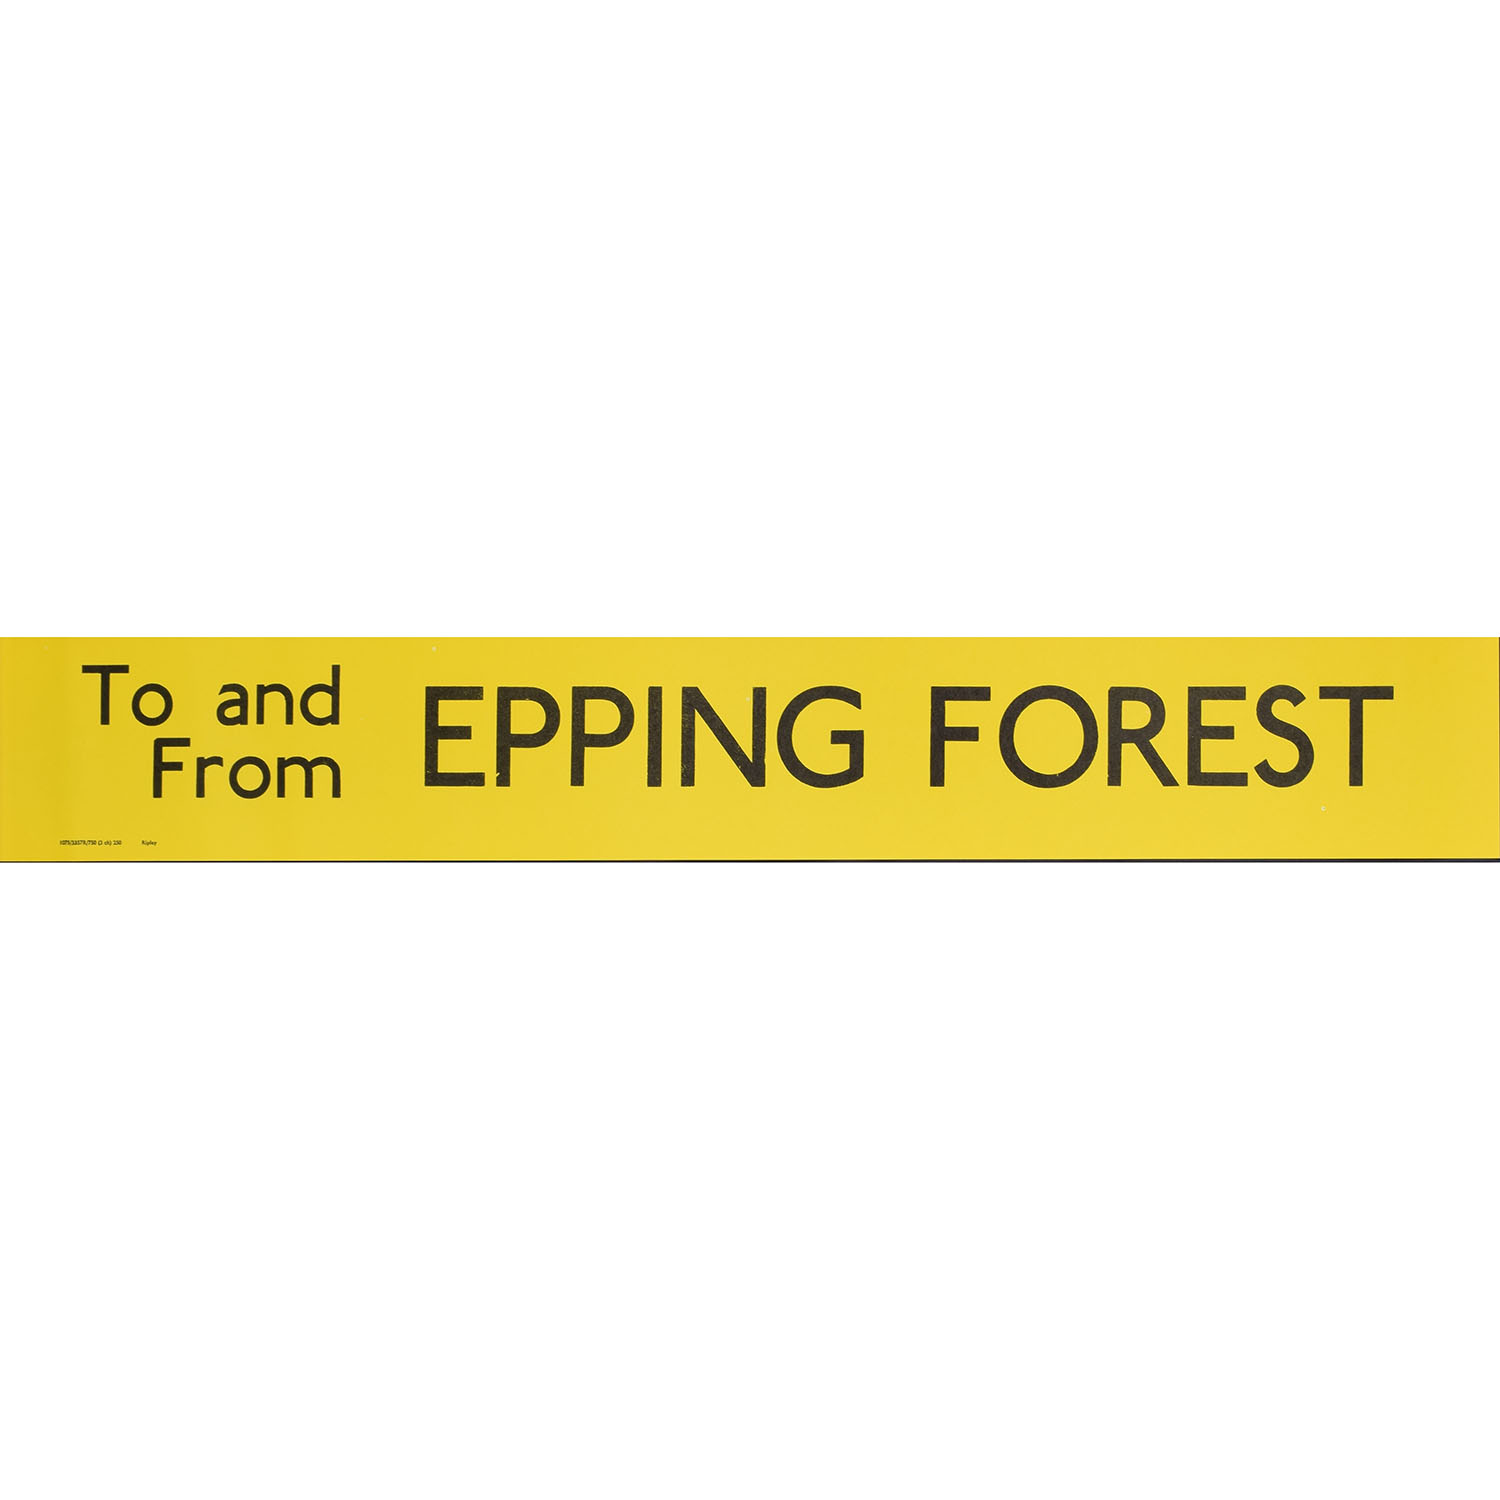 Epping Forest Routemaster Slipboard Poster c1970